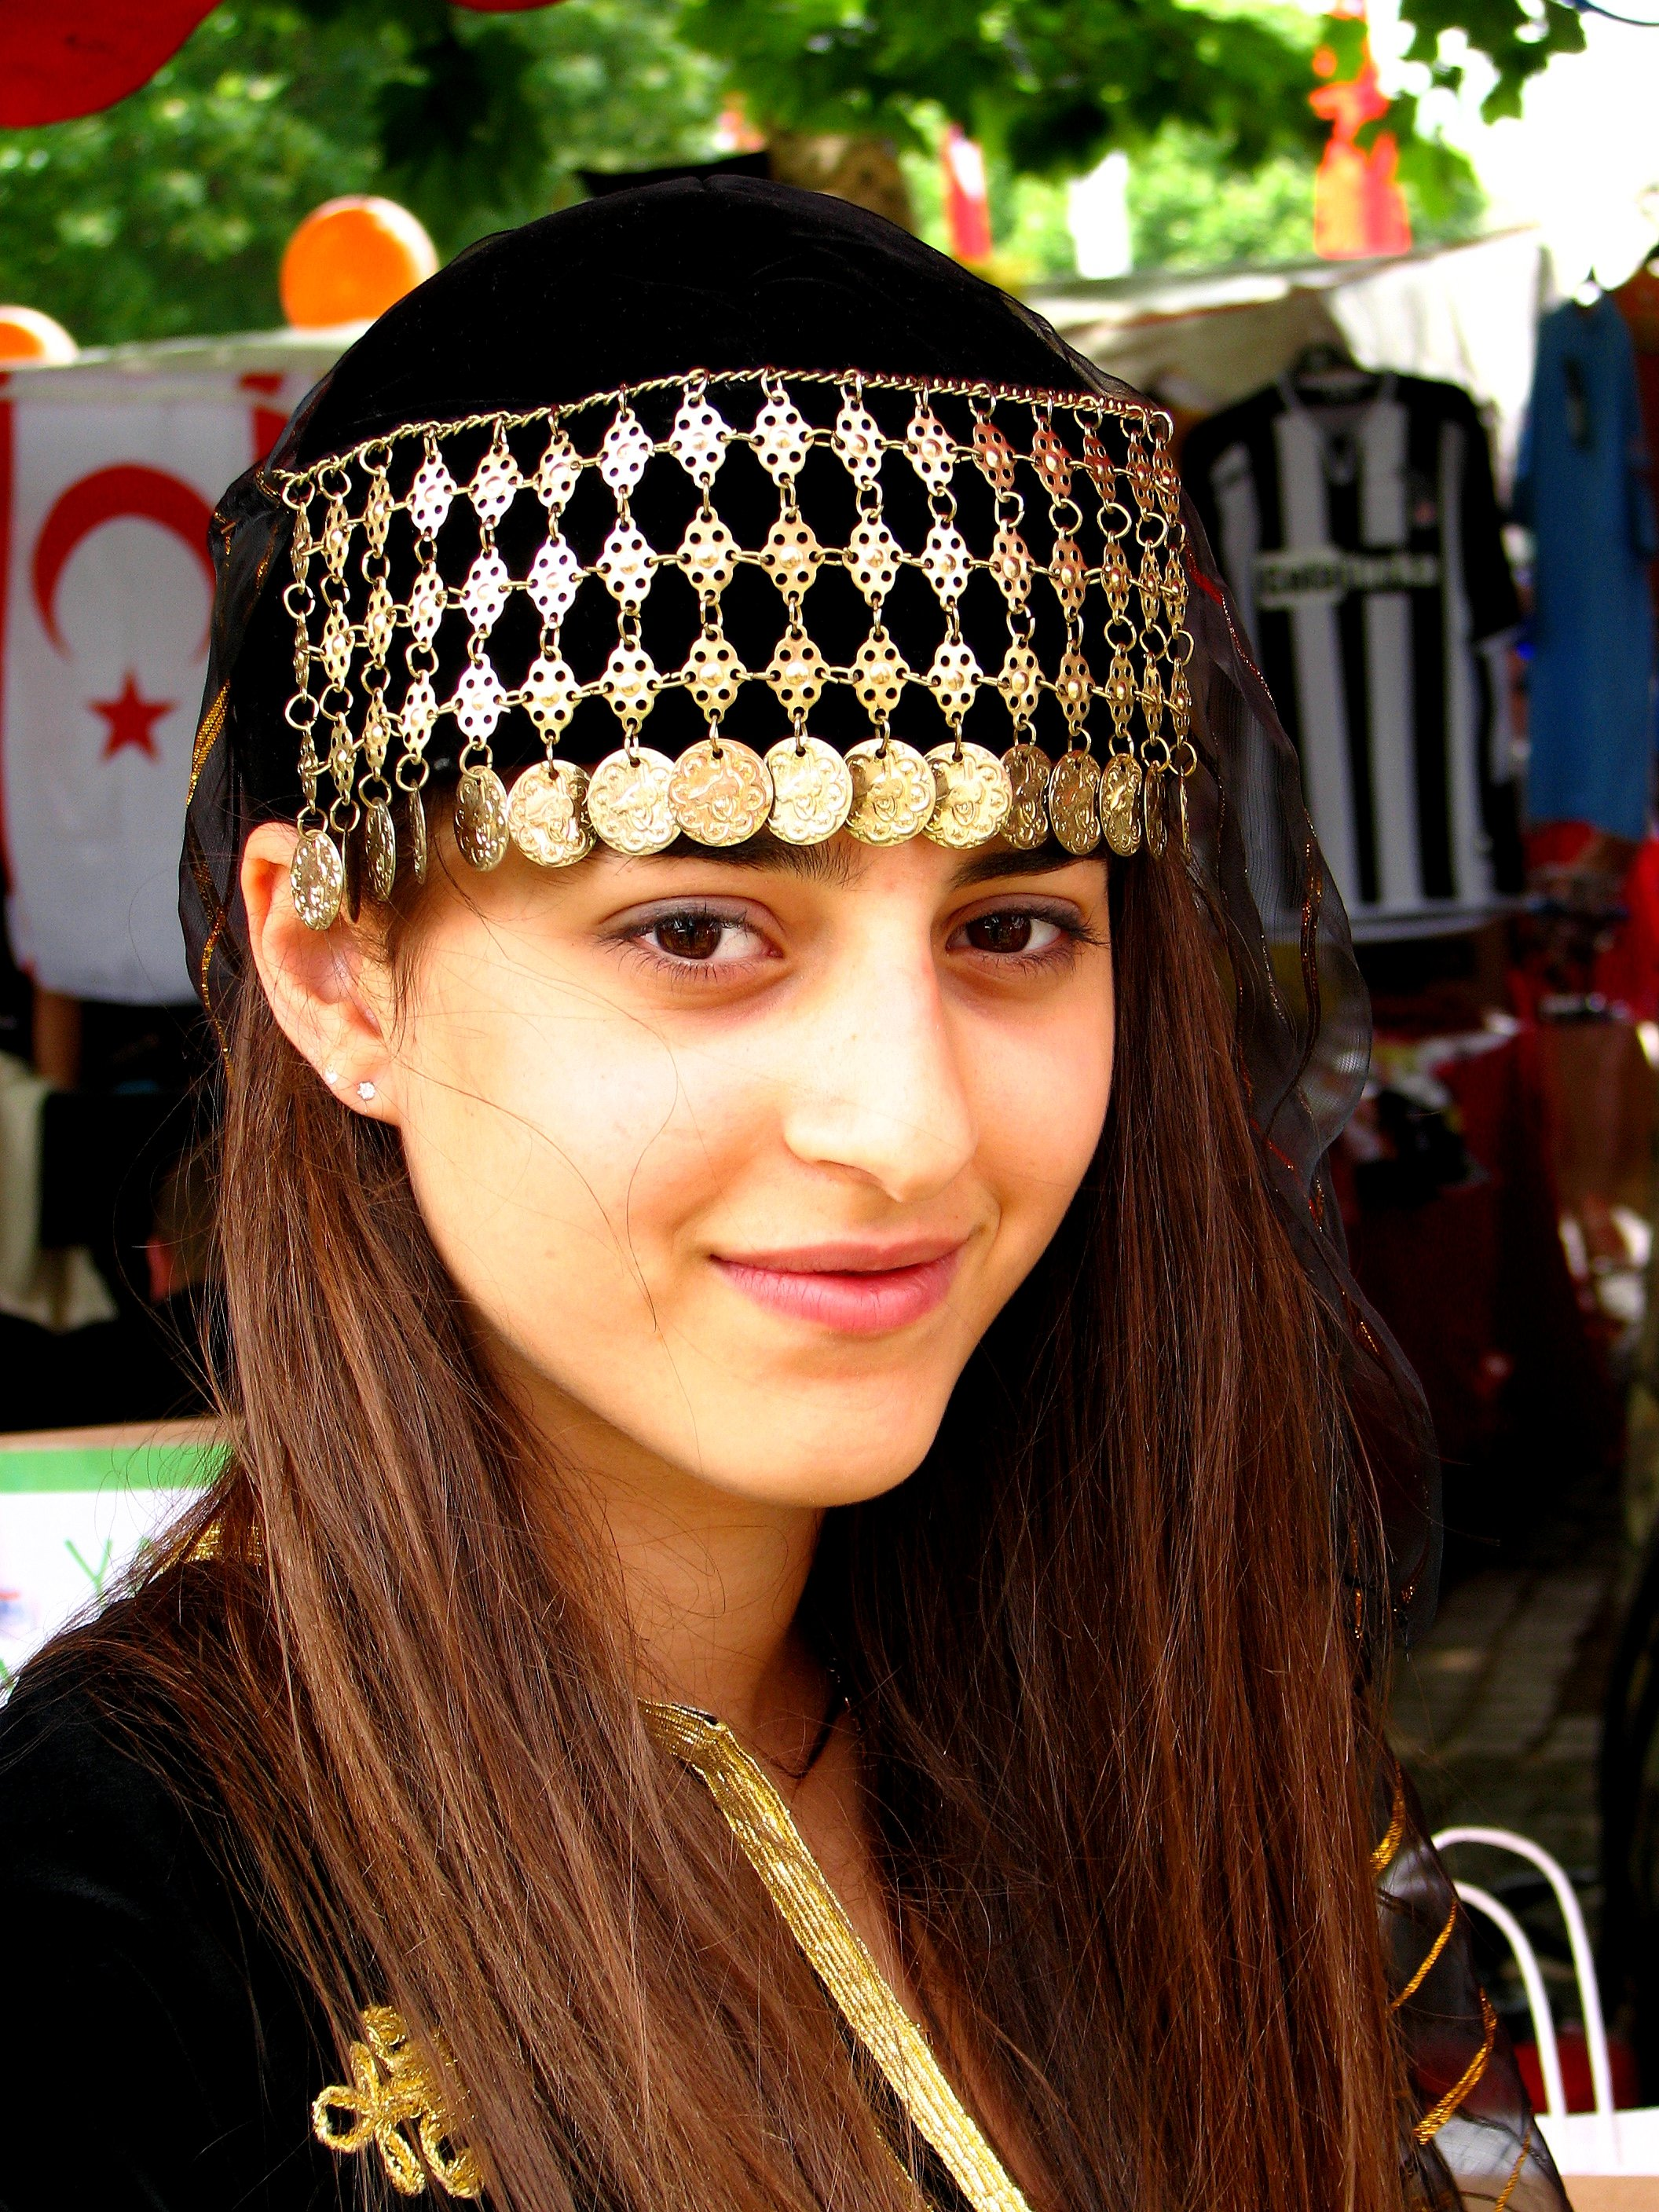 turkey city christian women dating site Turkish dating services for single christian girls join our dating site to contact christian women for any type of relationships - friendship, love, romance, flirt of may be casual dating.